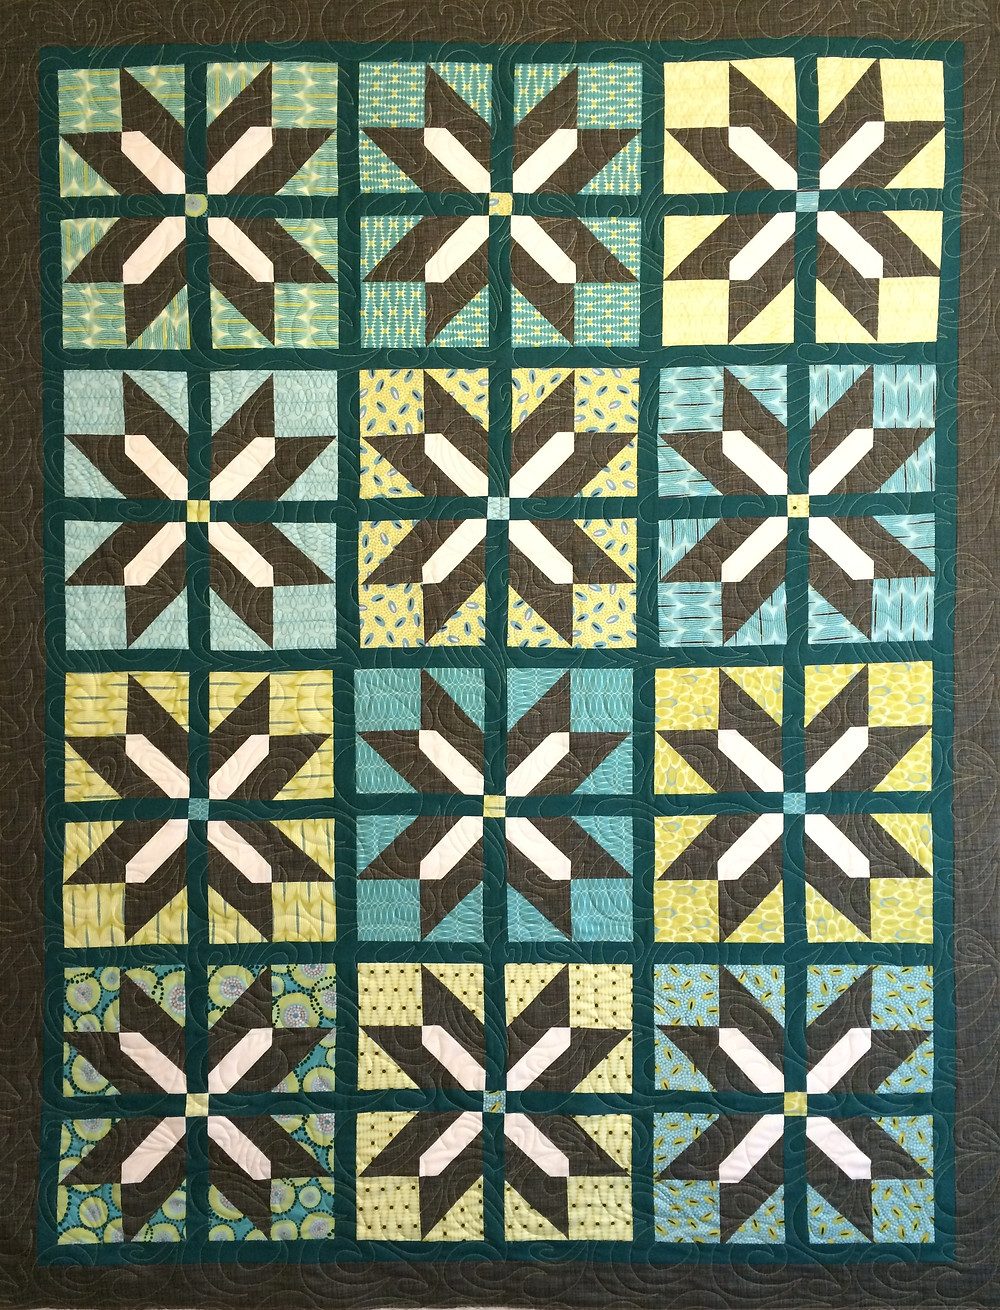 A For You Quilt in shades of teal and yellow